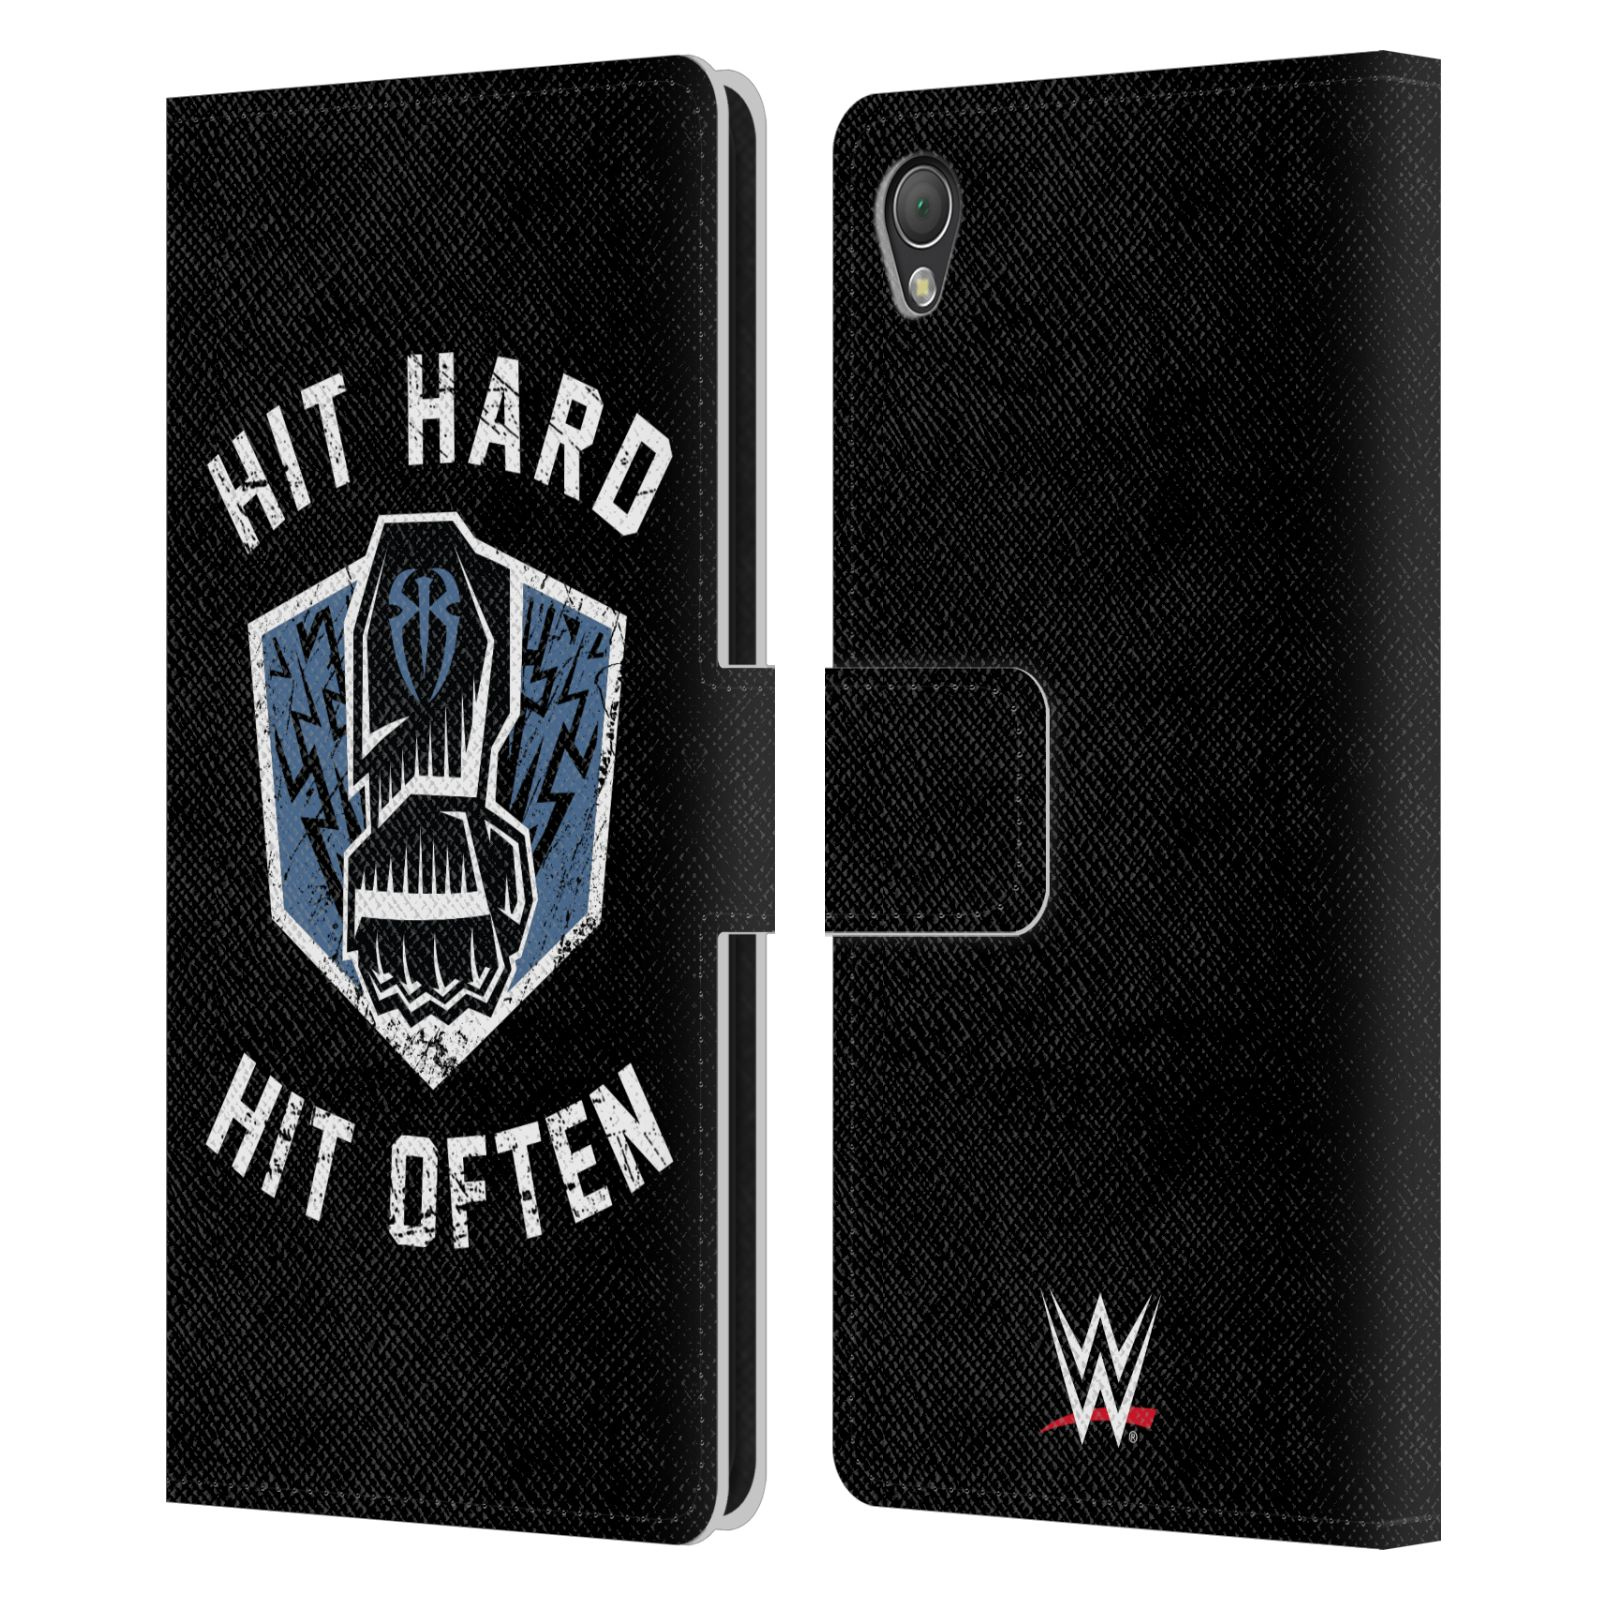 OFFICIAL-WWE-2017-ROMAN-REIGNS-LEATHER-BOOK-WALLET-CASE-COVER-FOR-SONY-PHONES-1